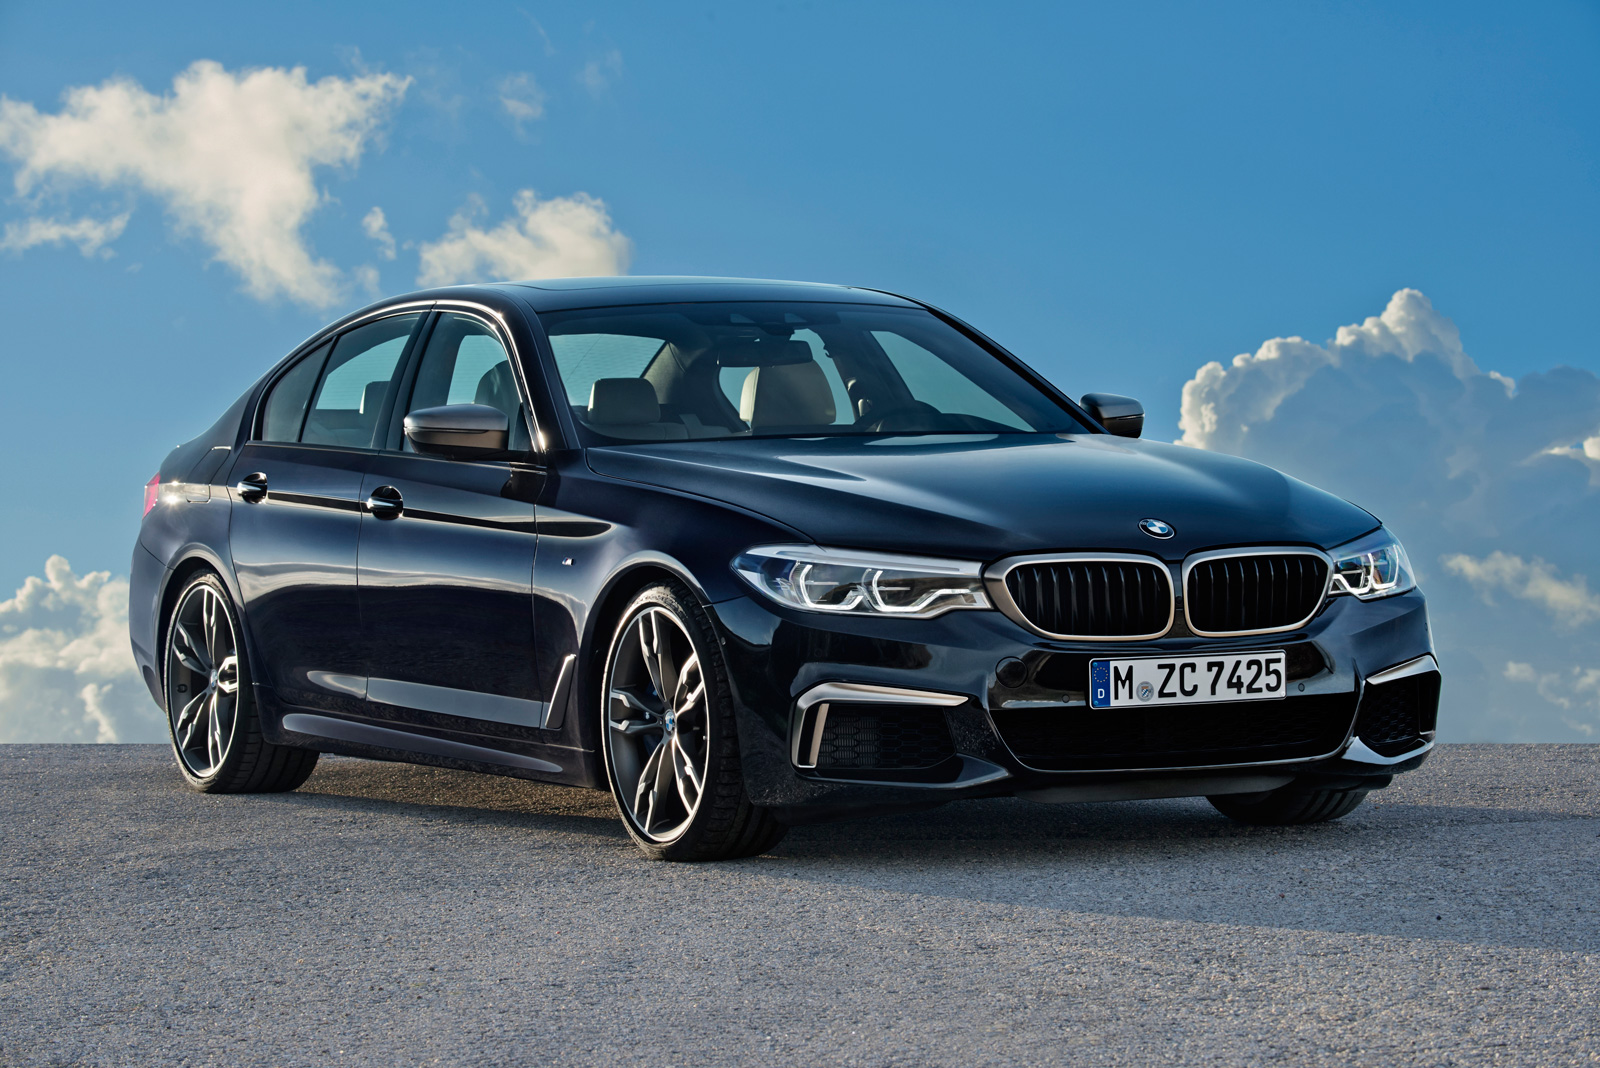 BMW Convertible fastest bmw model The BMW M5 is No Longer the Fastest 5 Series » AutoGuide.com News